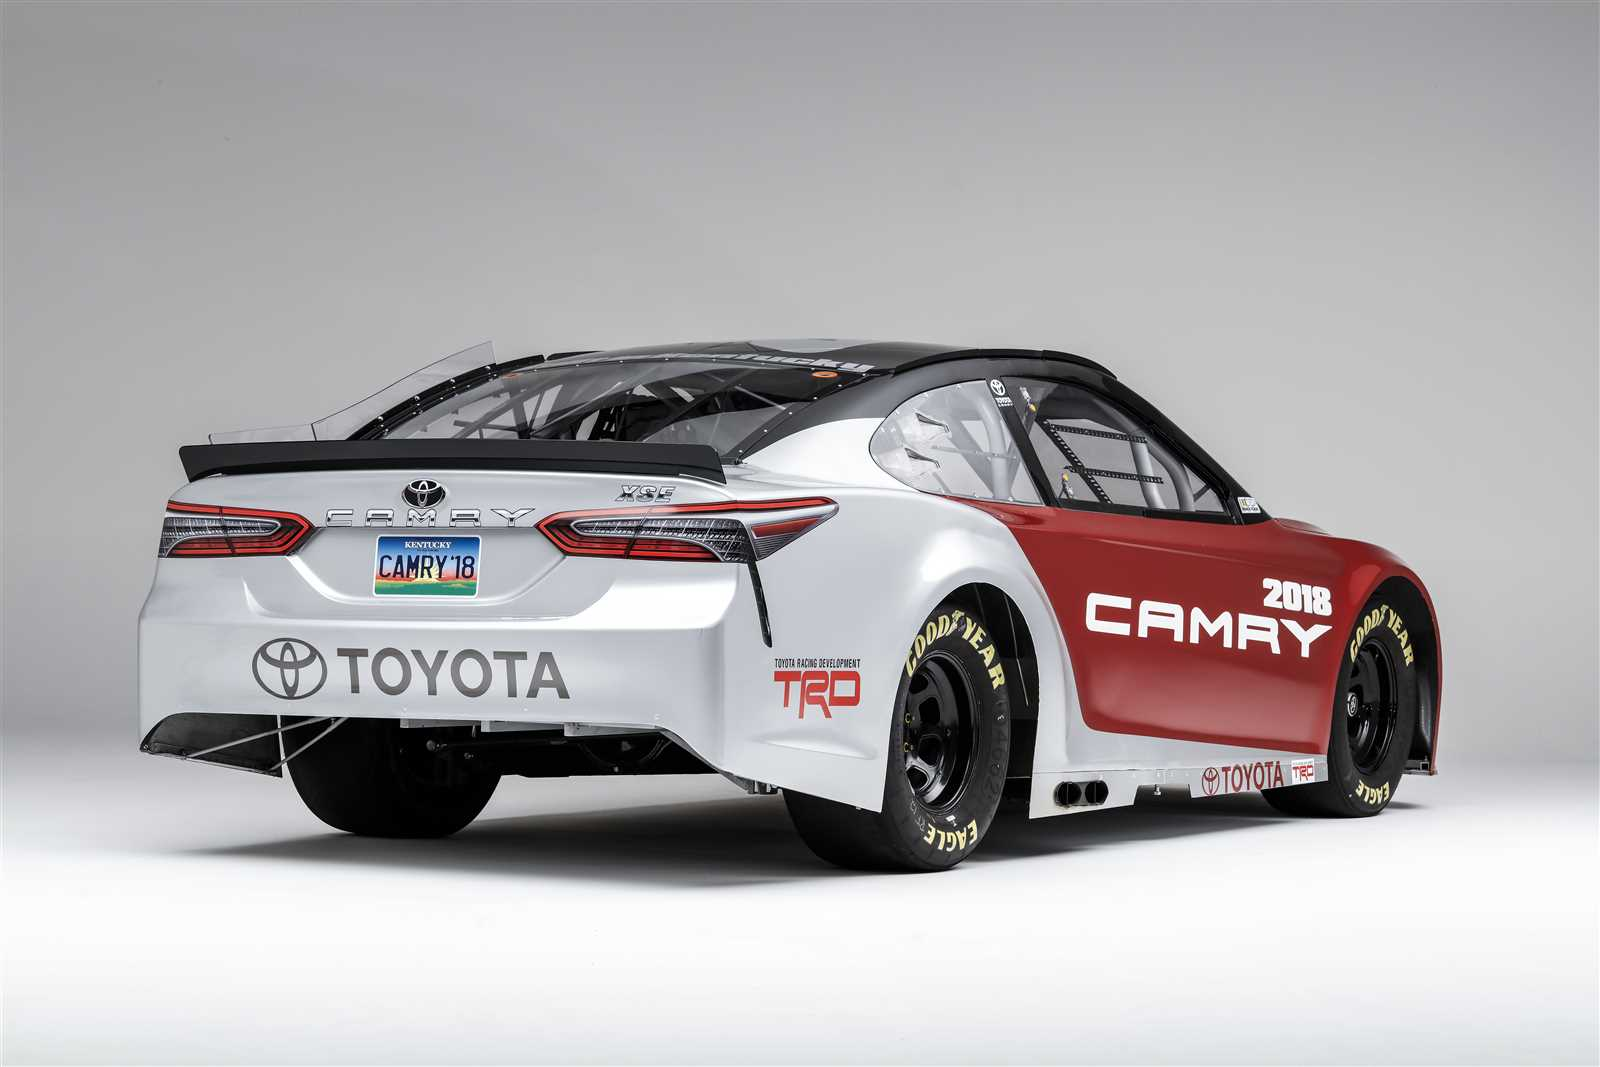 2018 Nascar Toyota Camry Photo Released Nascar Cup Series